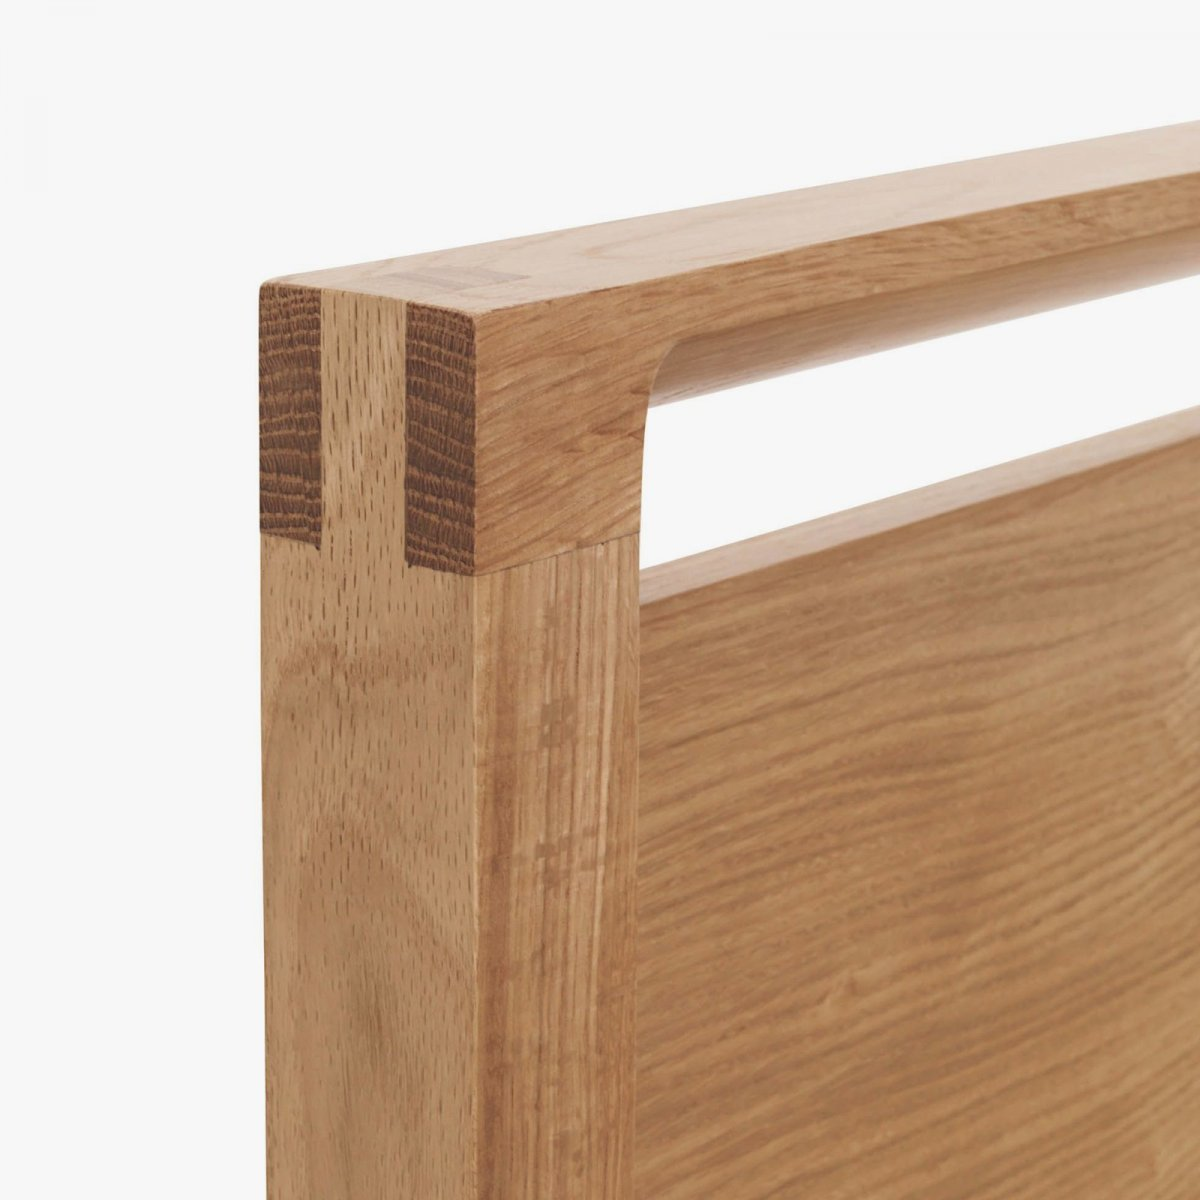 Matera Bed with Storage, oak, detail.